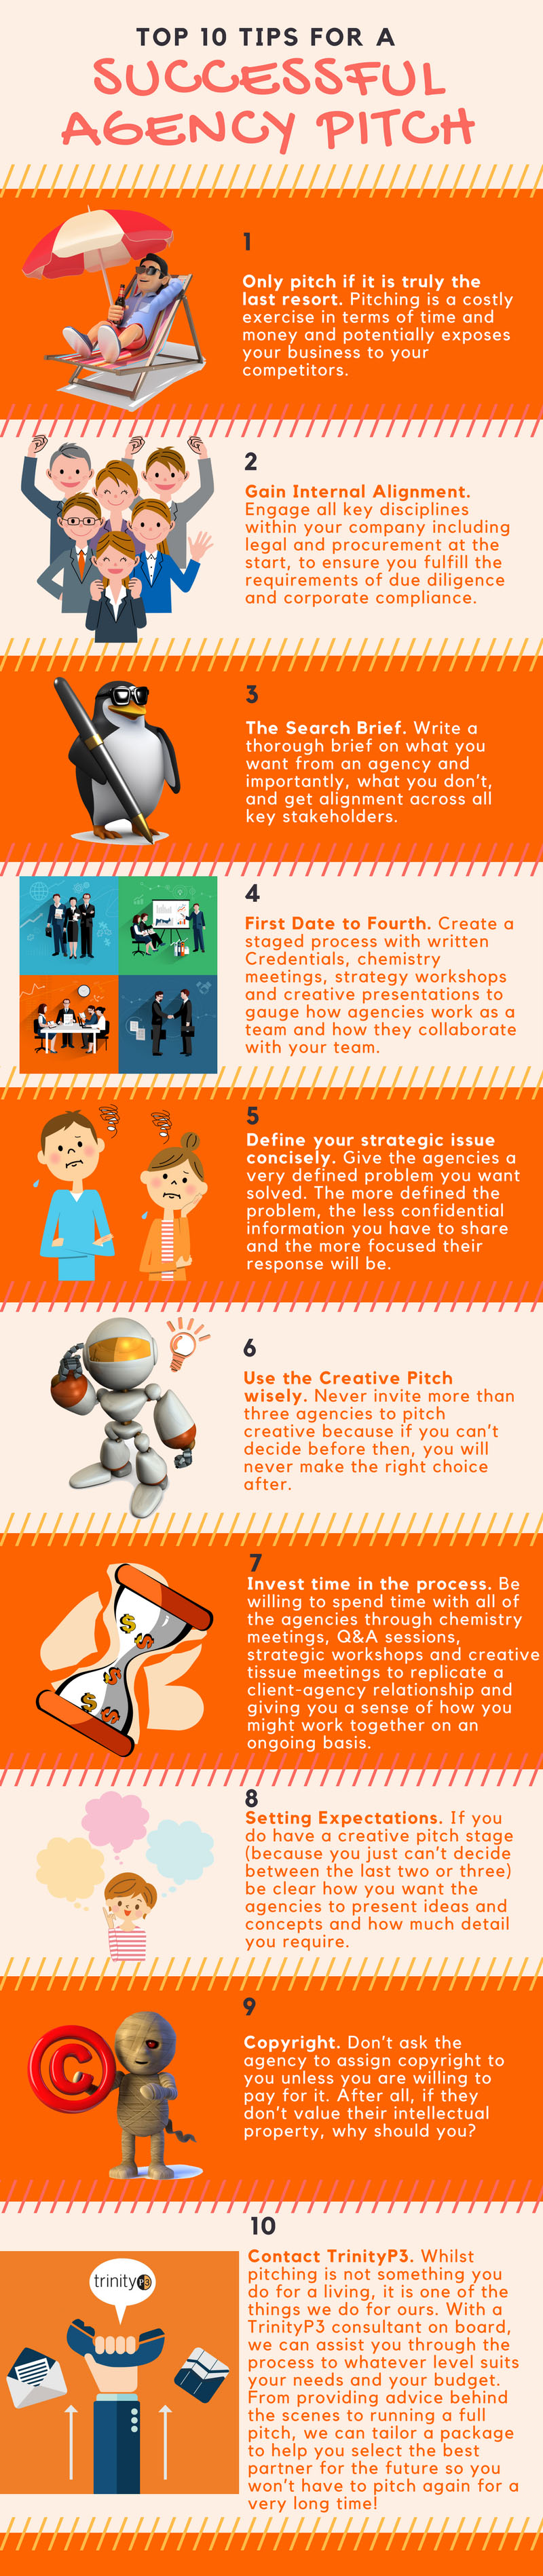 Top 10 tips for a successful agency pitch